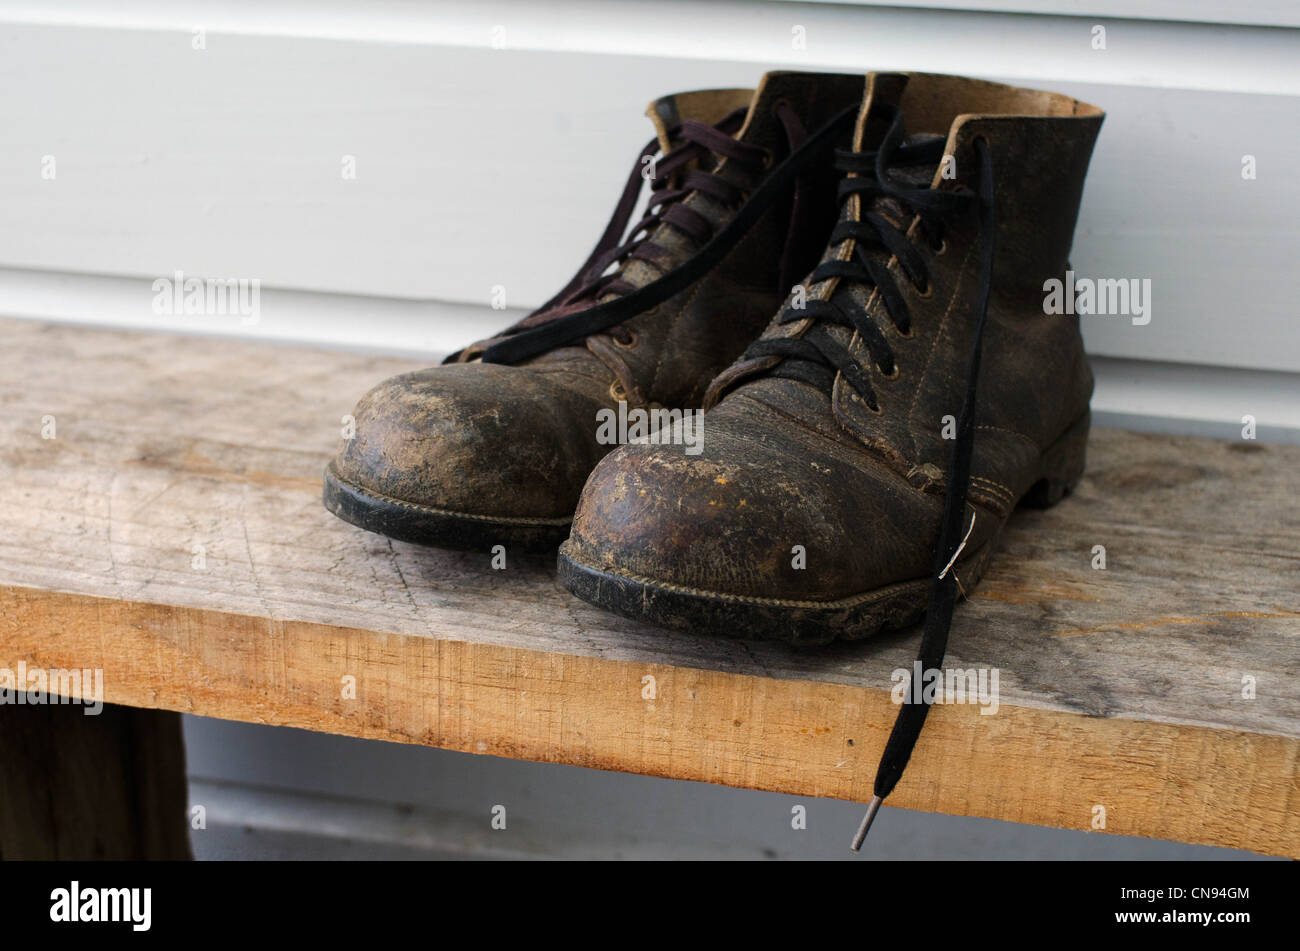 Dirty old working boots - Stock Image